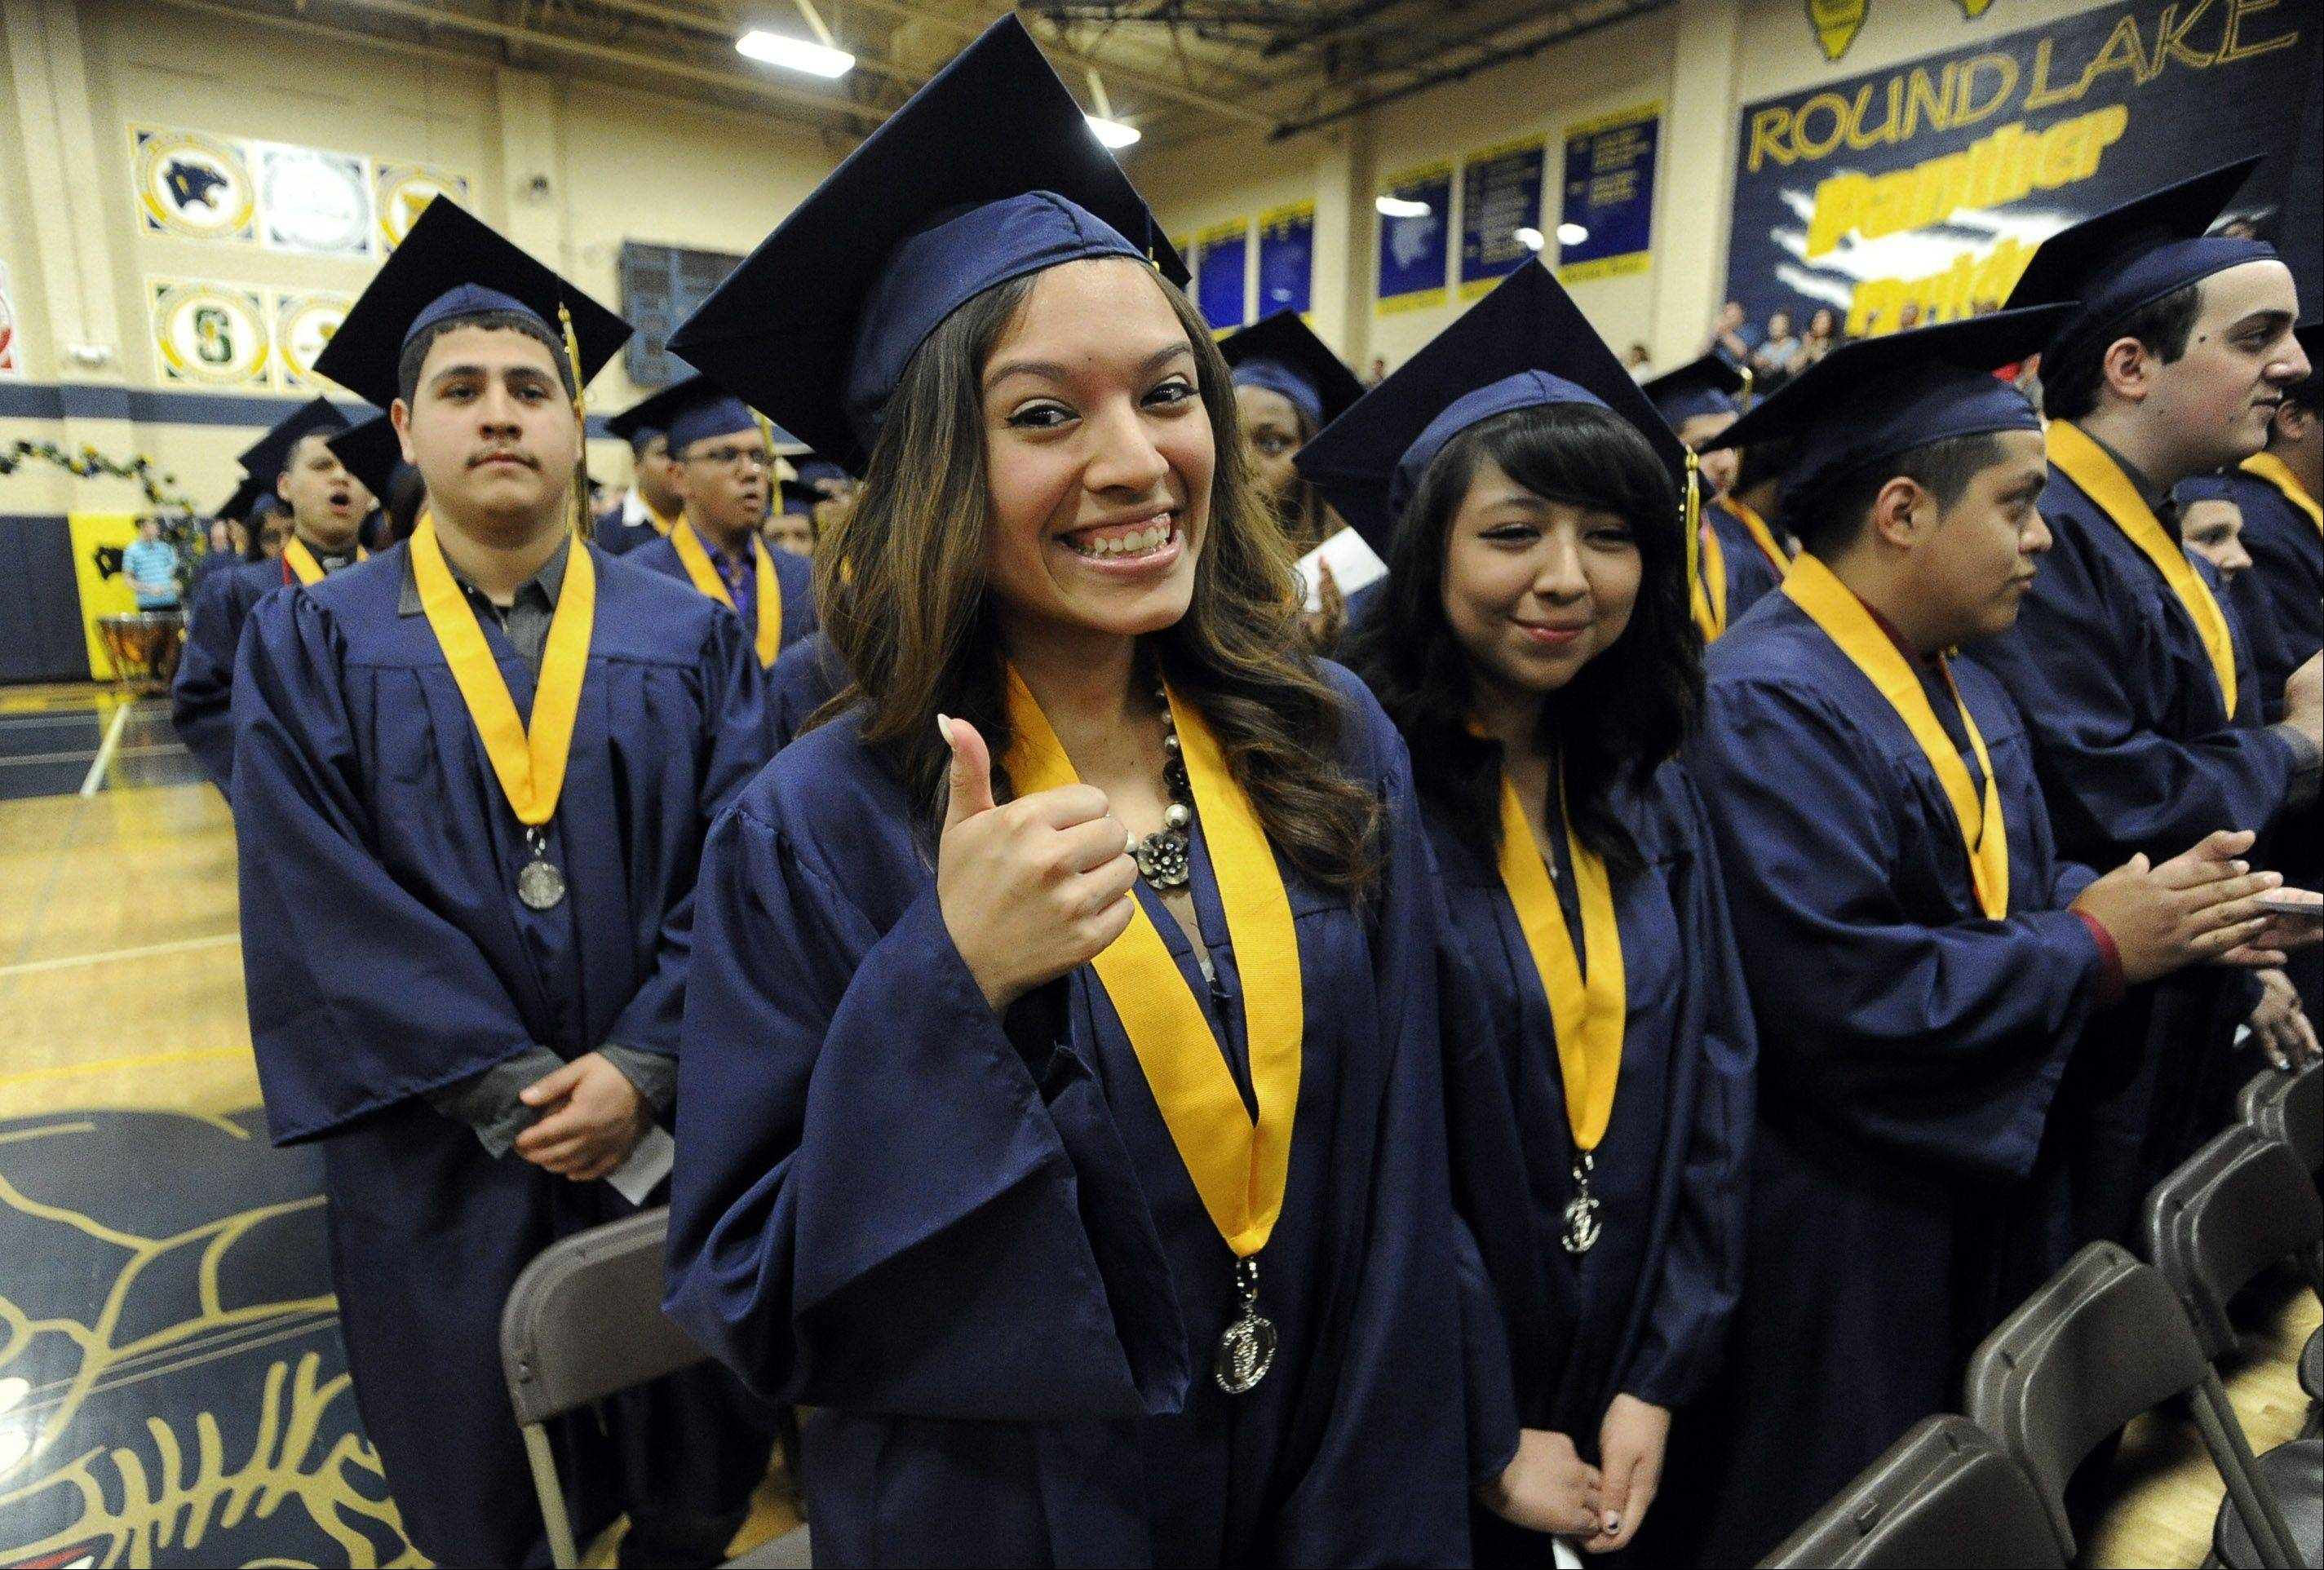 Jaqueline Hernandez gives a thumbs as she takes part in the 59th Commencement of Round Lake High School on Saturday.